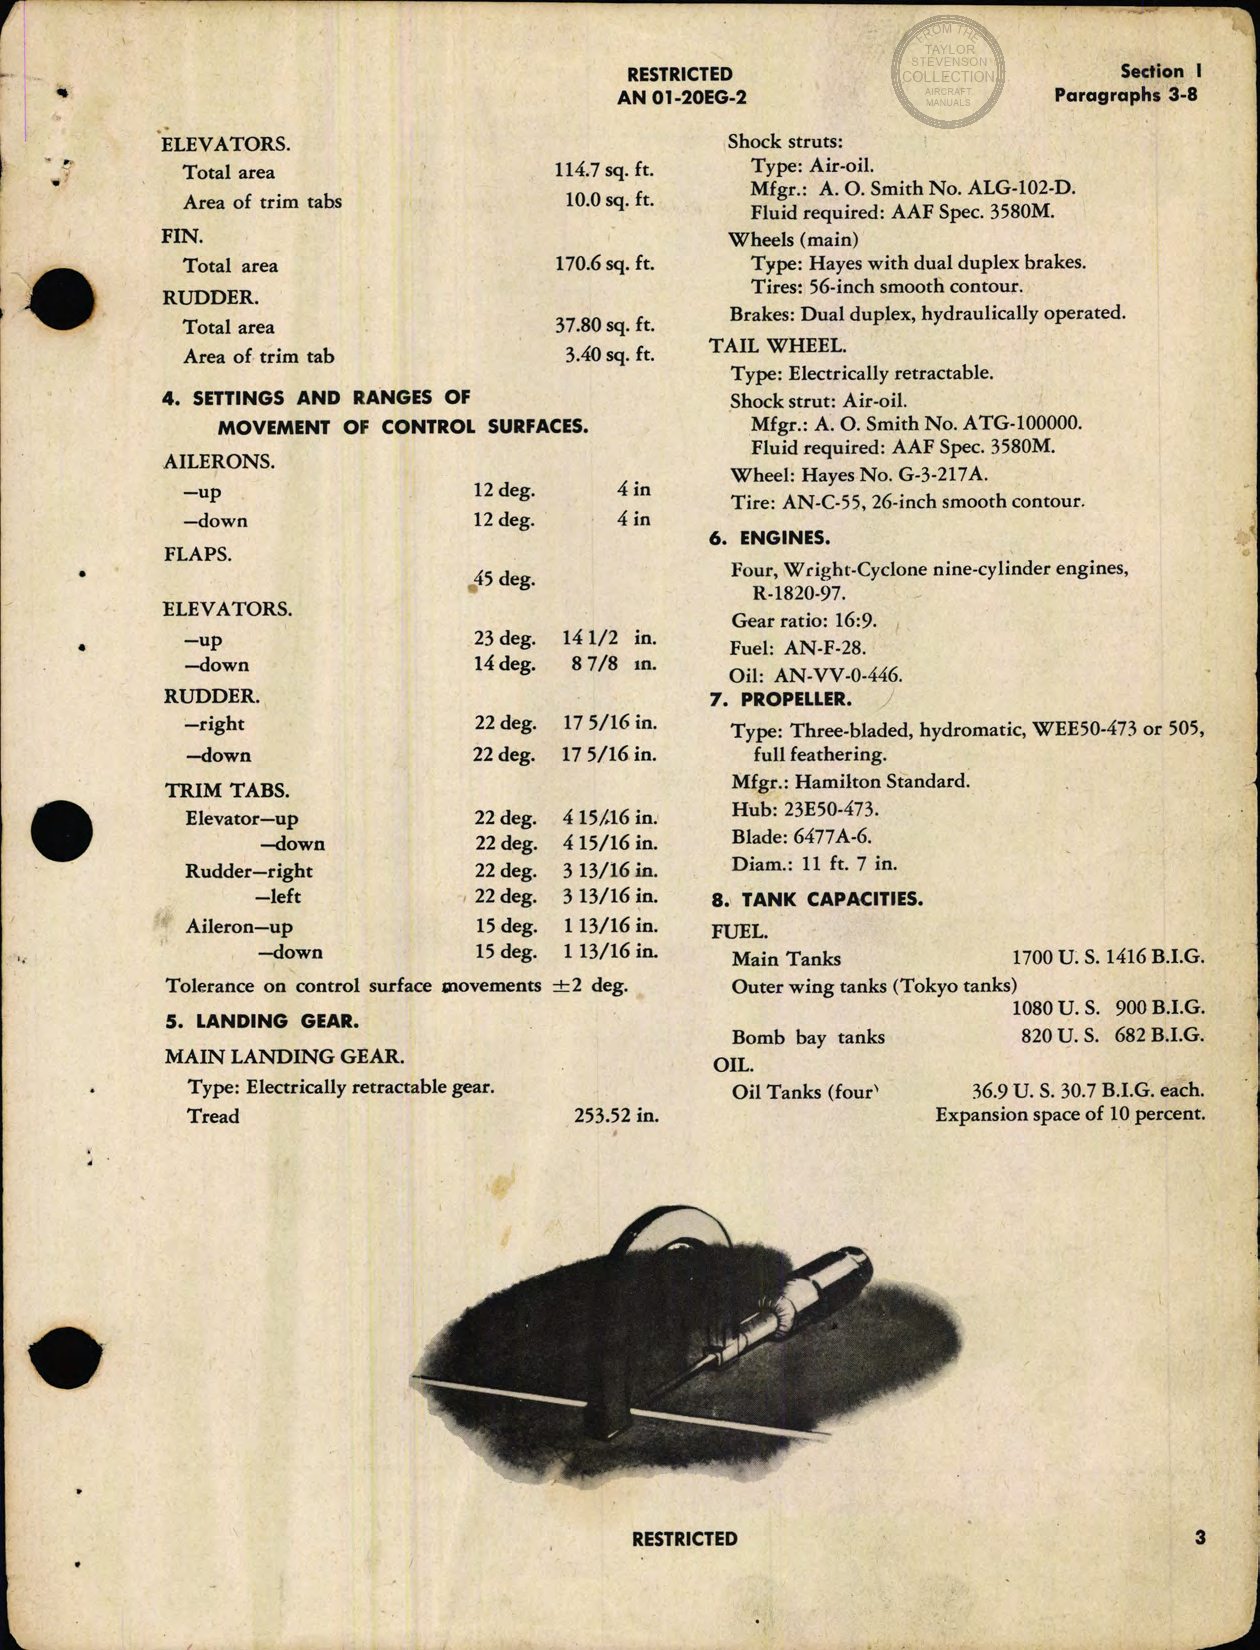 Sample page 5 from AirCorps Library document: Erection and Maintenance Instructions for B-17G (Fortress III) Airplanes